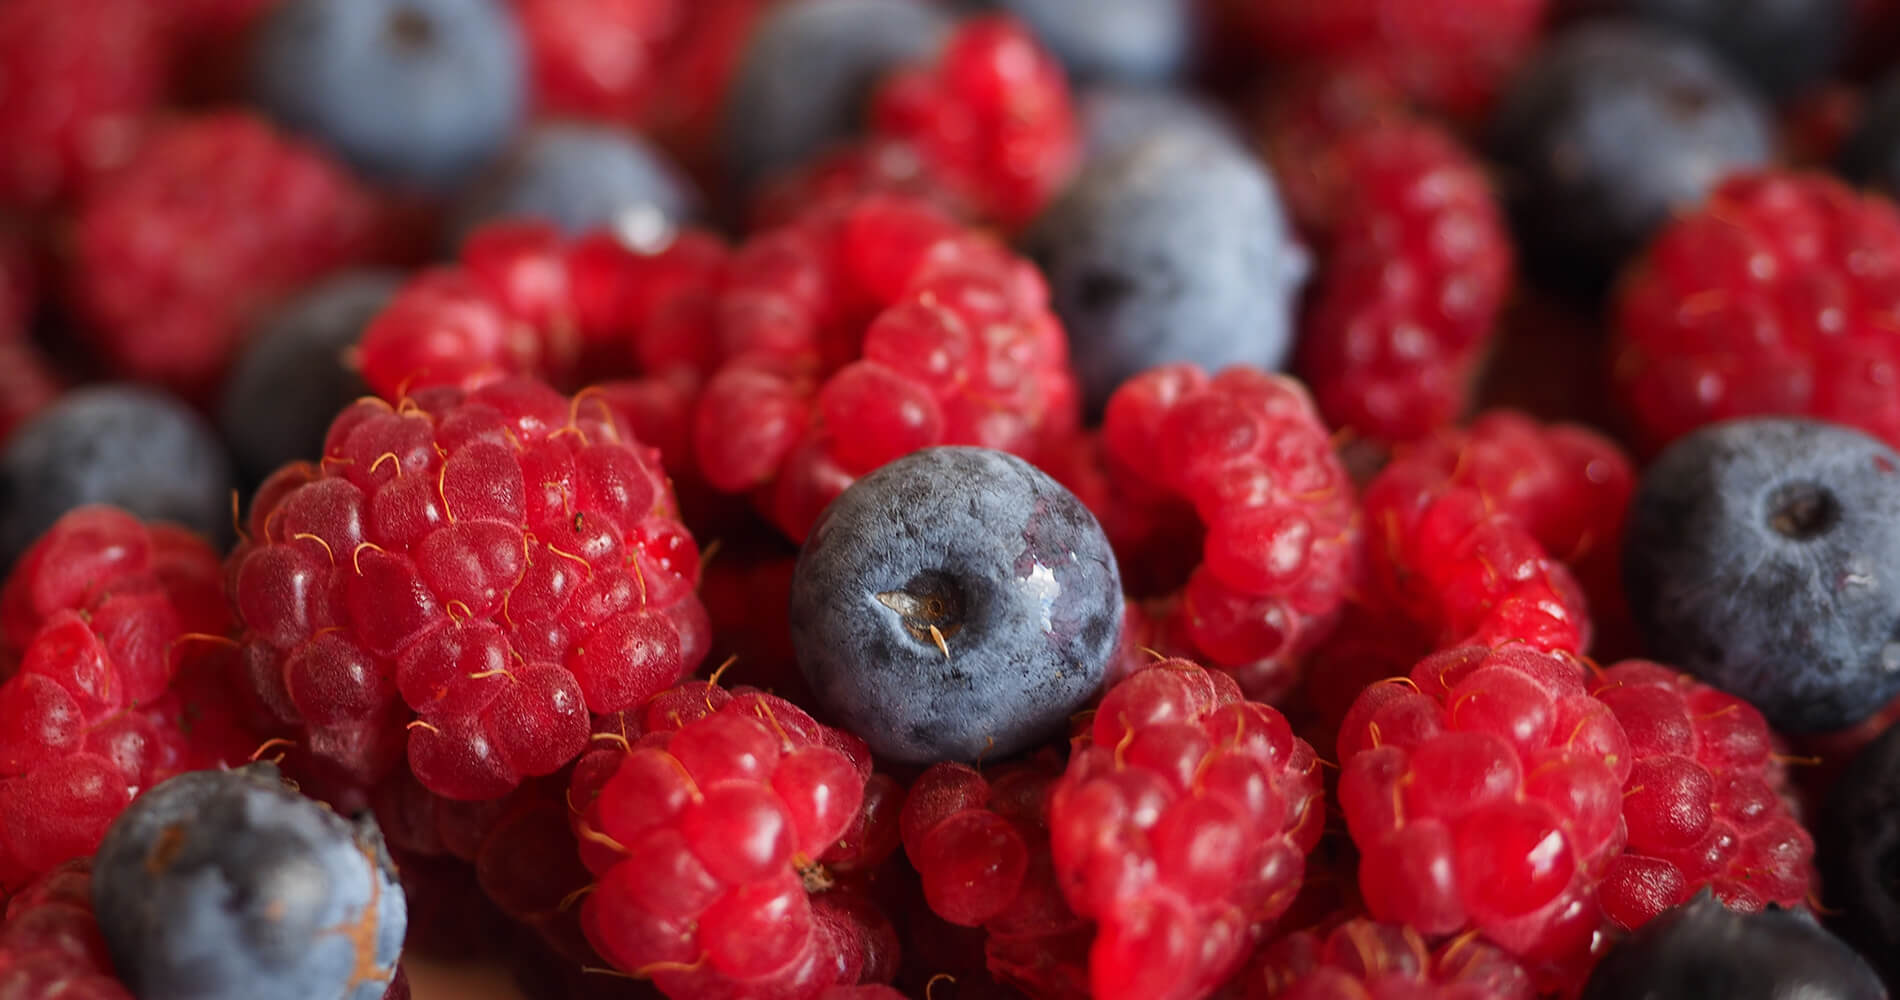 blueberry-raspberry-header